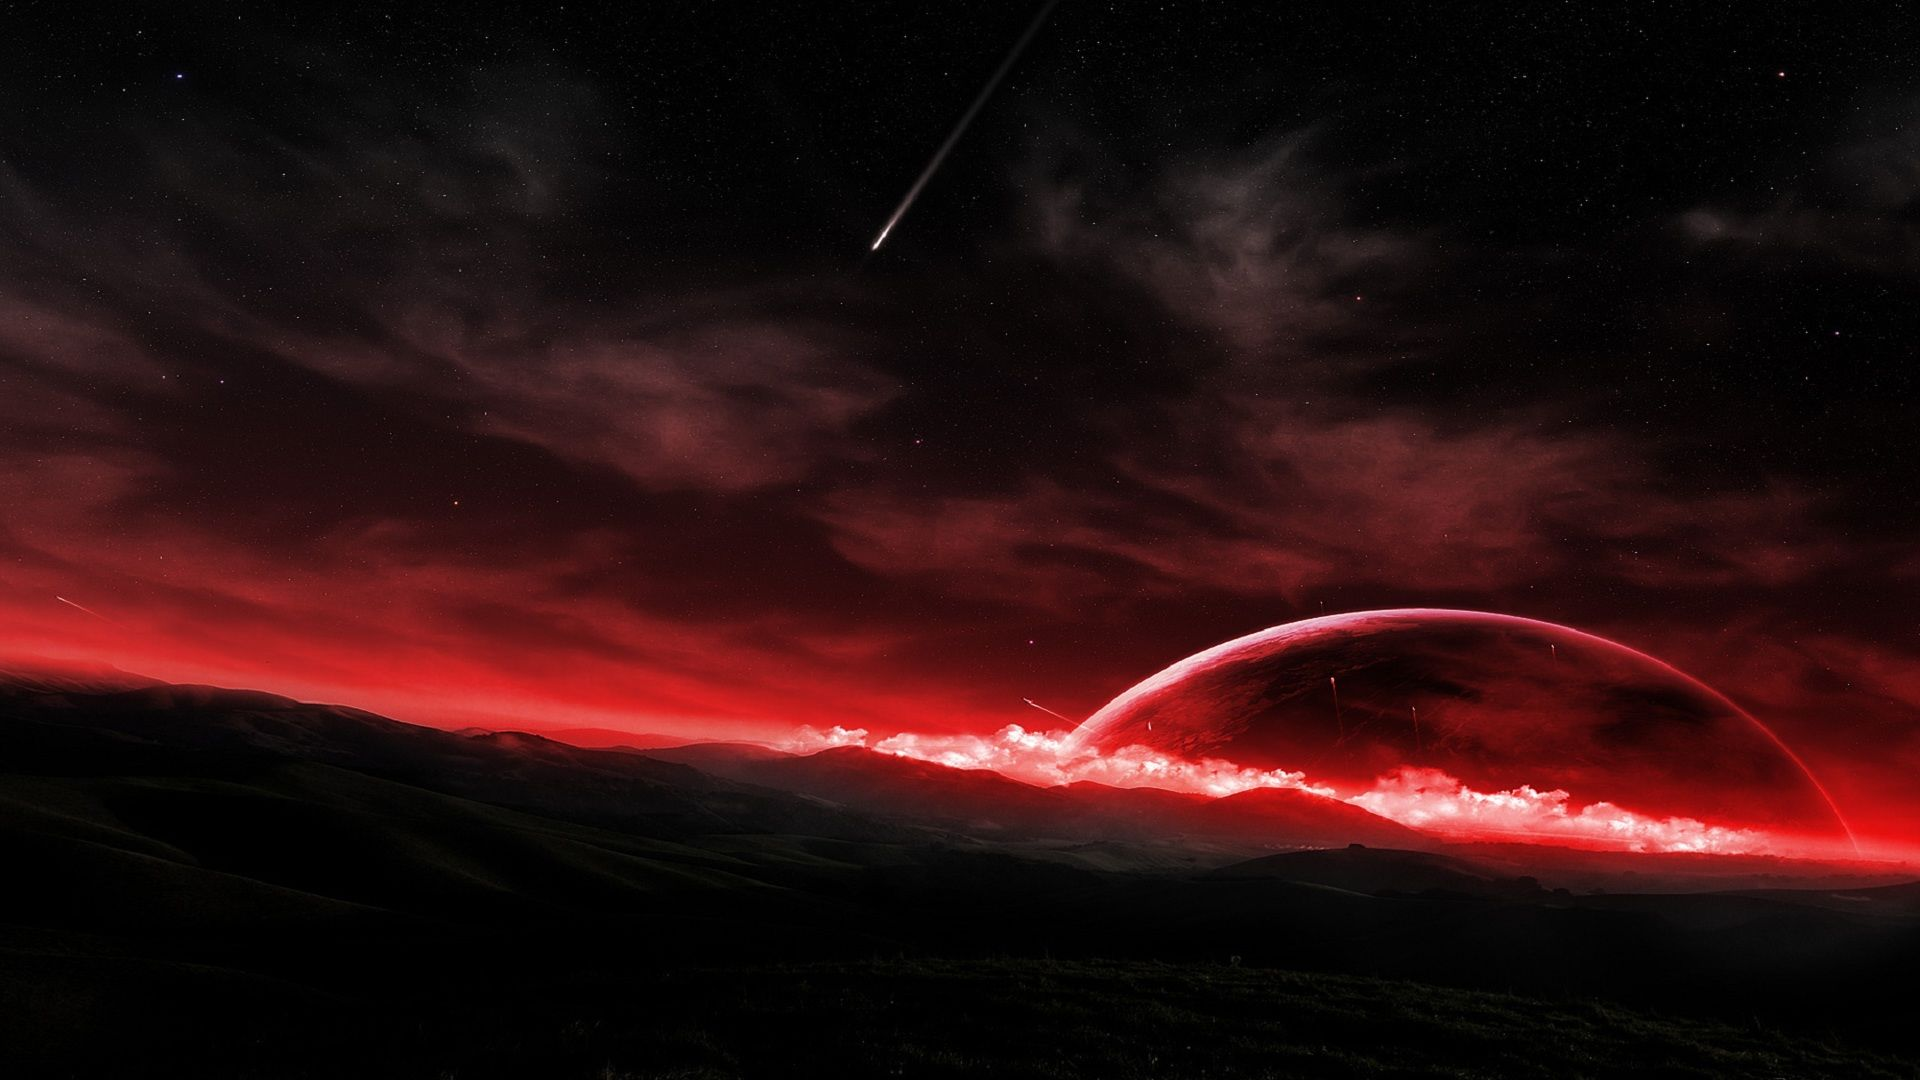 Space red digital wallpaper hd dekstop 7050wfzrw - Black space wallpaper ...